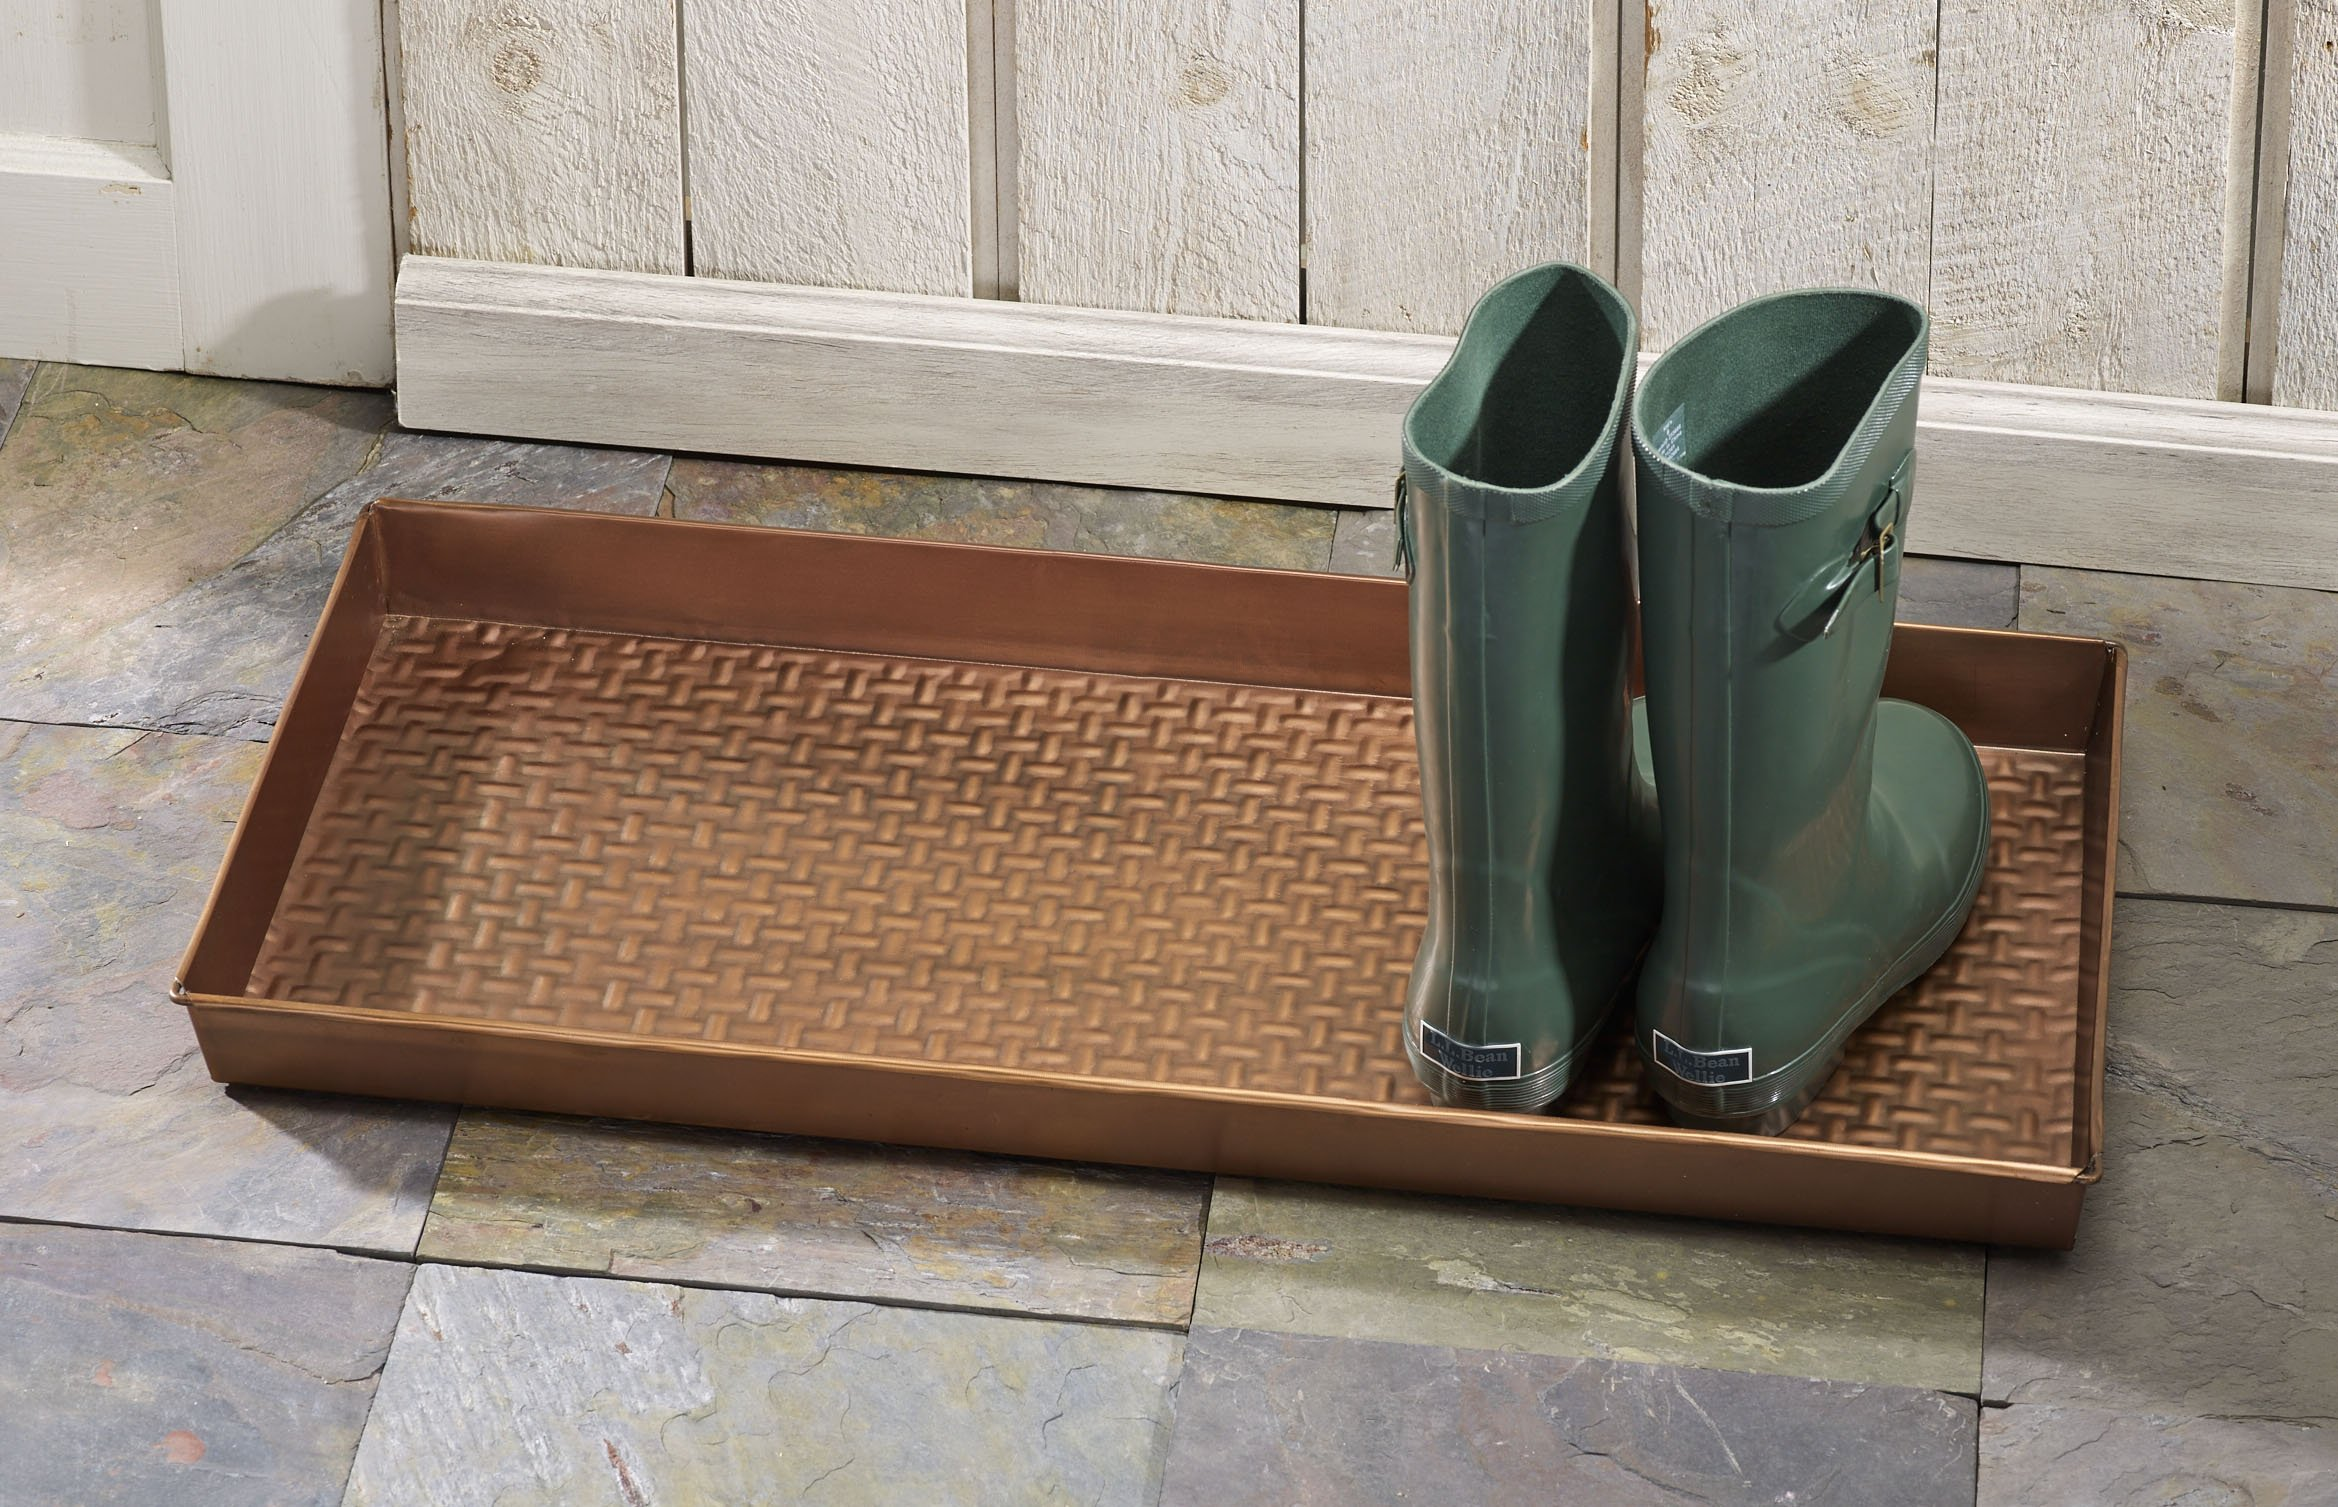 HF by LT Basketweave Pattern Metal Boot Tray, 30'' by 13'', Antique Copper Finish by HOME FURNISHINGS BY LARRY TRAVERSO (Image #3)